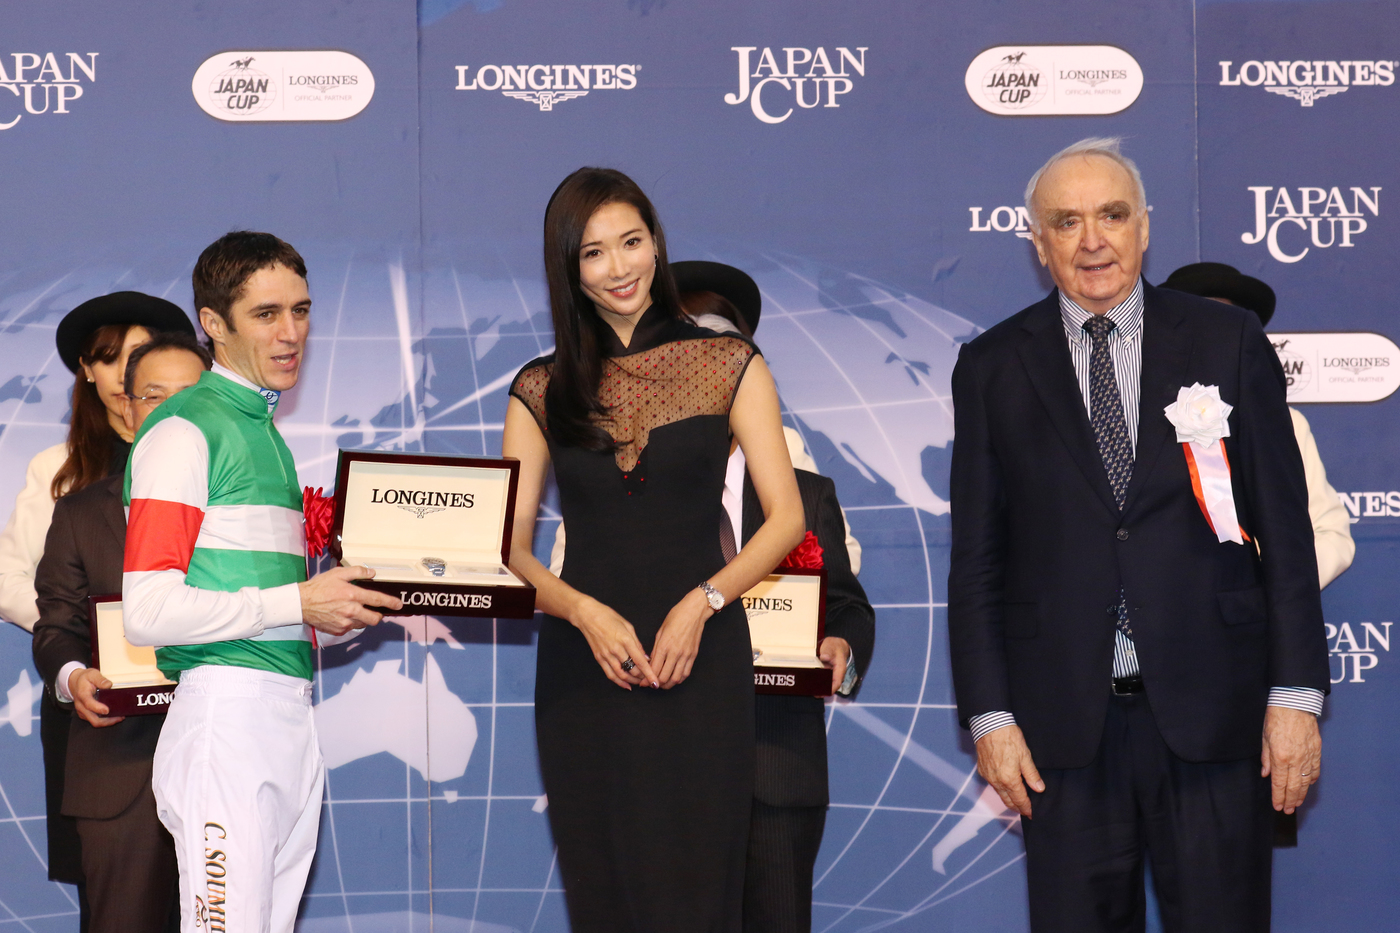 Longines Flat Racing Event: Christophe Soumillon on Epiphaneia wins the Japan Cup in association with Longines 8